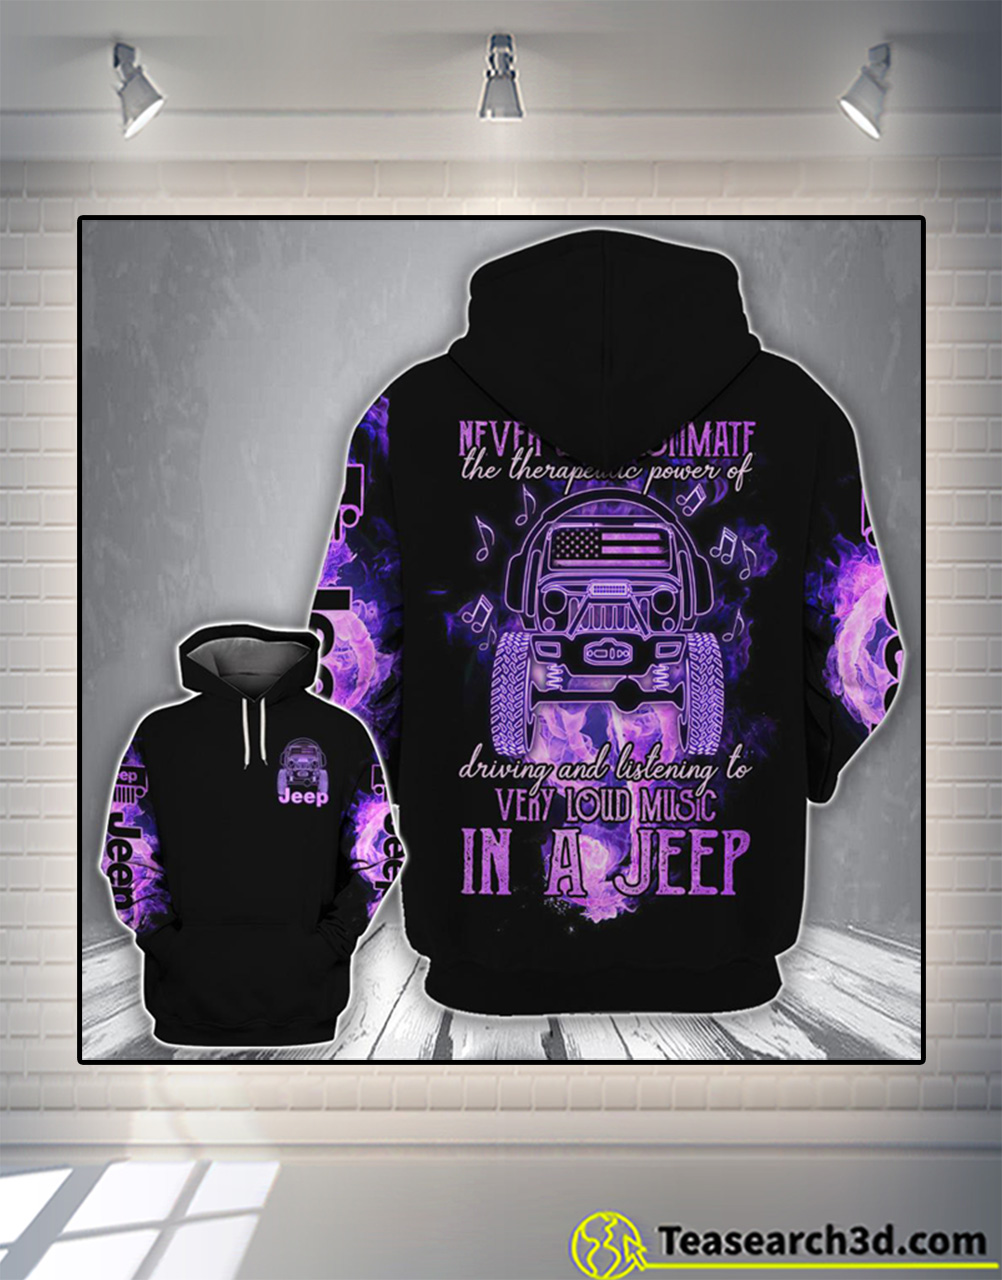 Loud music in a jeep 3d all over printed hoodie